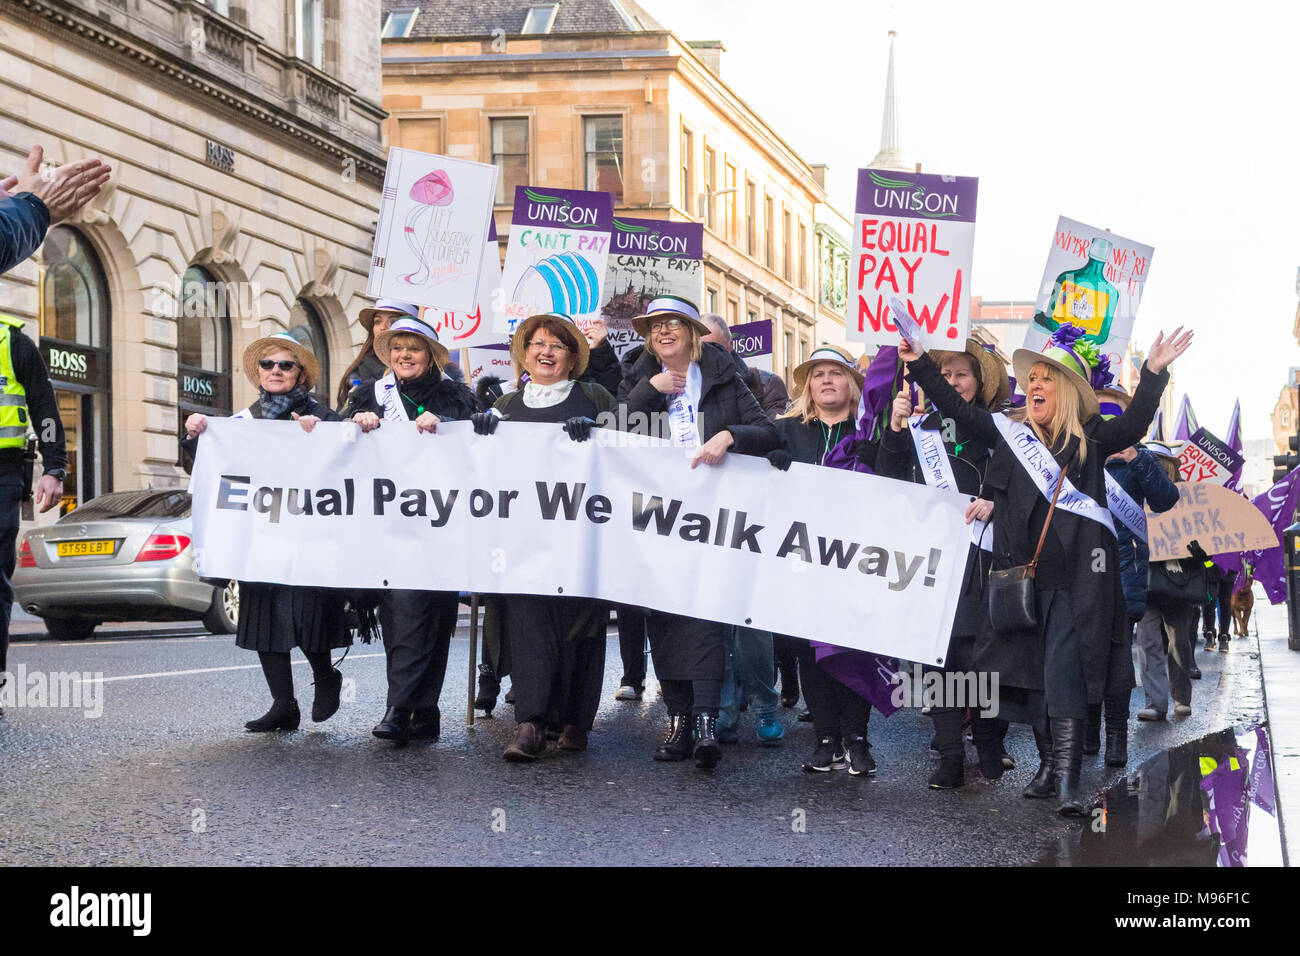 Equal Pay Protest March in Glasgow 10 February 2018 - Stock Image